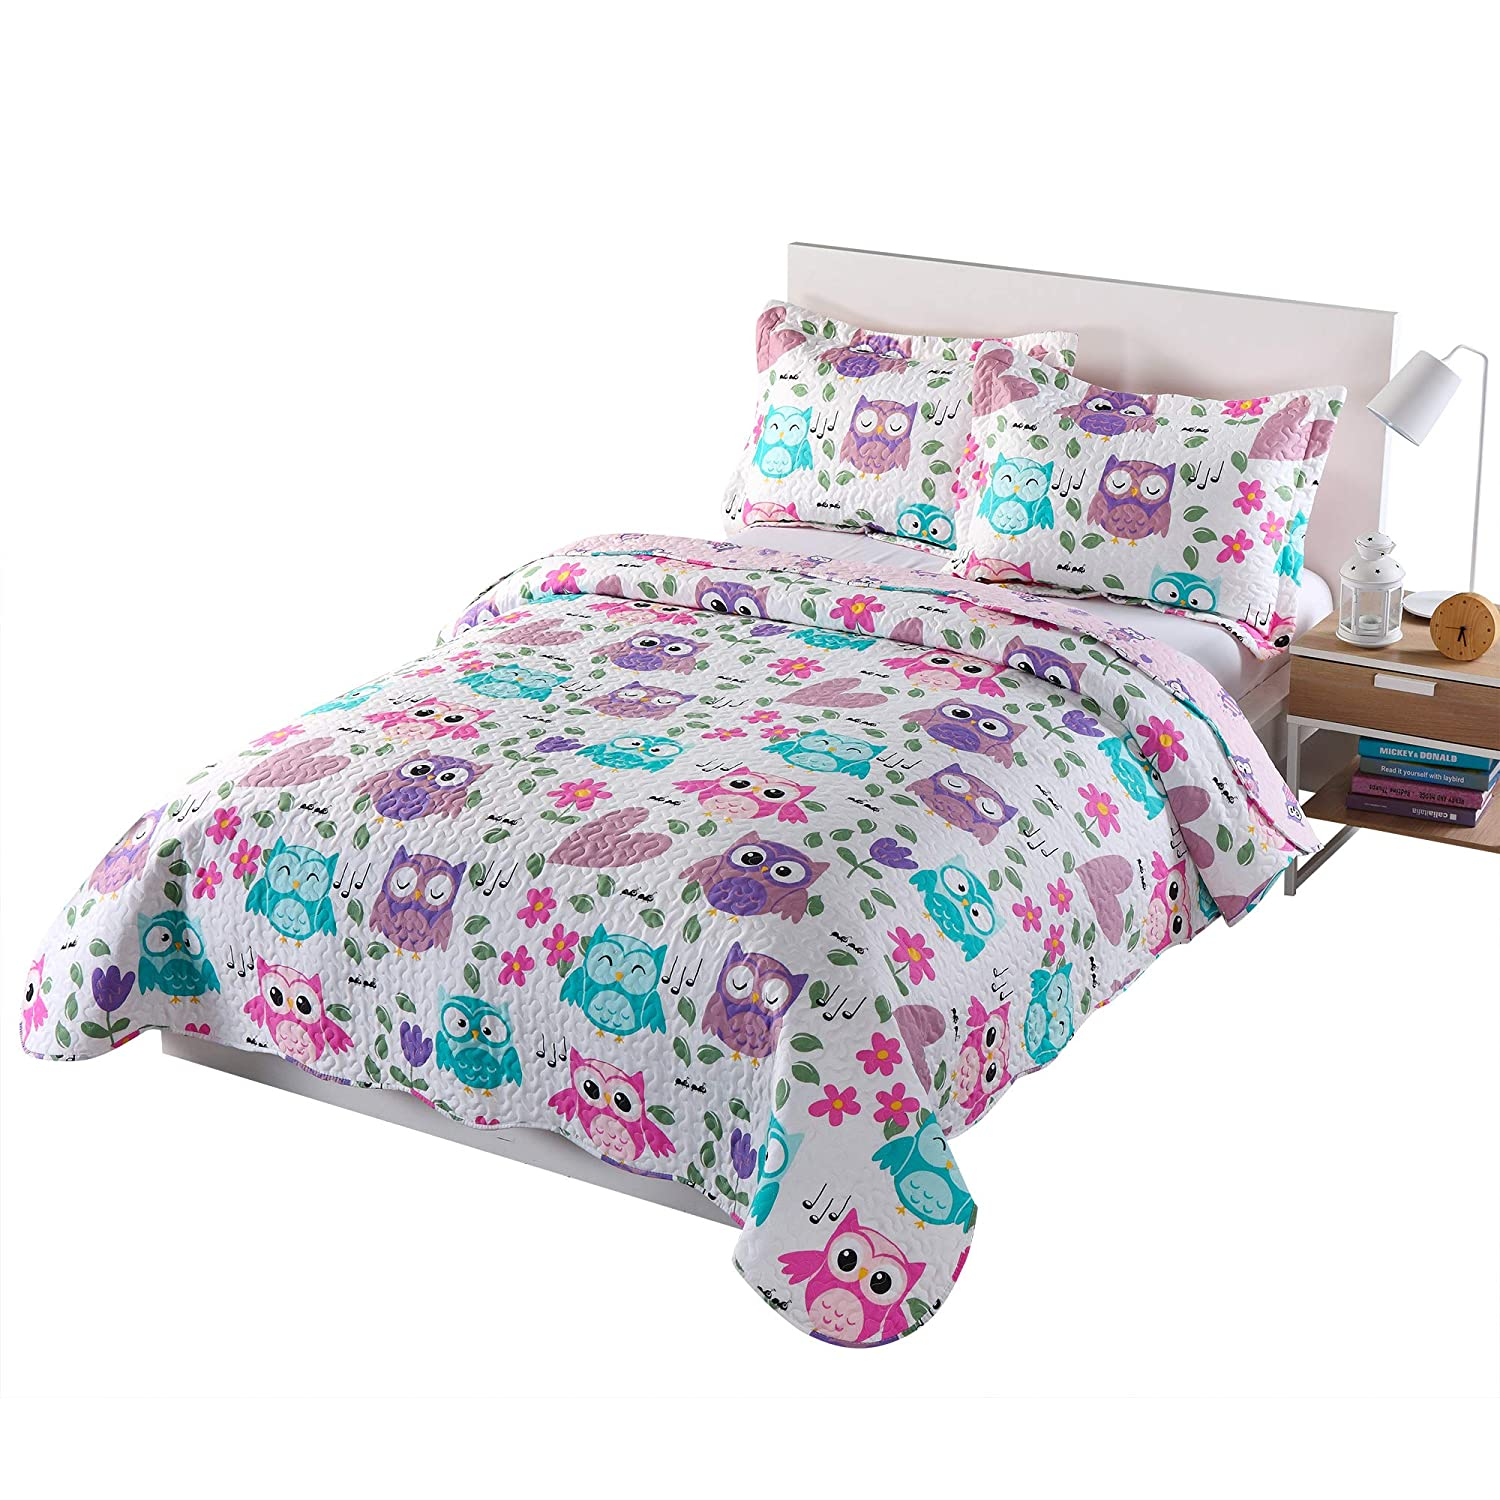 MarCielo 2 Piece Kids Bedspread Quilts Set Throw Blanket for Teens Boys Bed Printed Bedding Coverlet, Full Size, Purple Hoot (Full) ocean home fashion ca-awad purple hoot full